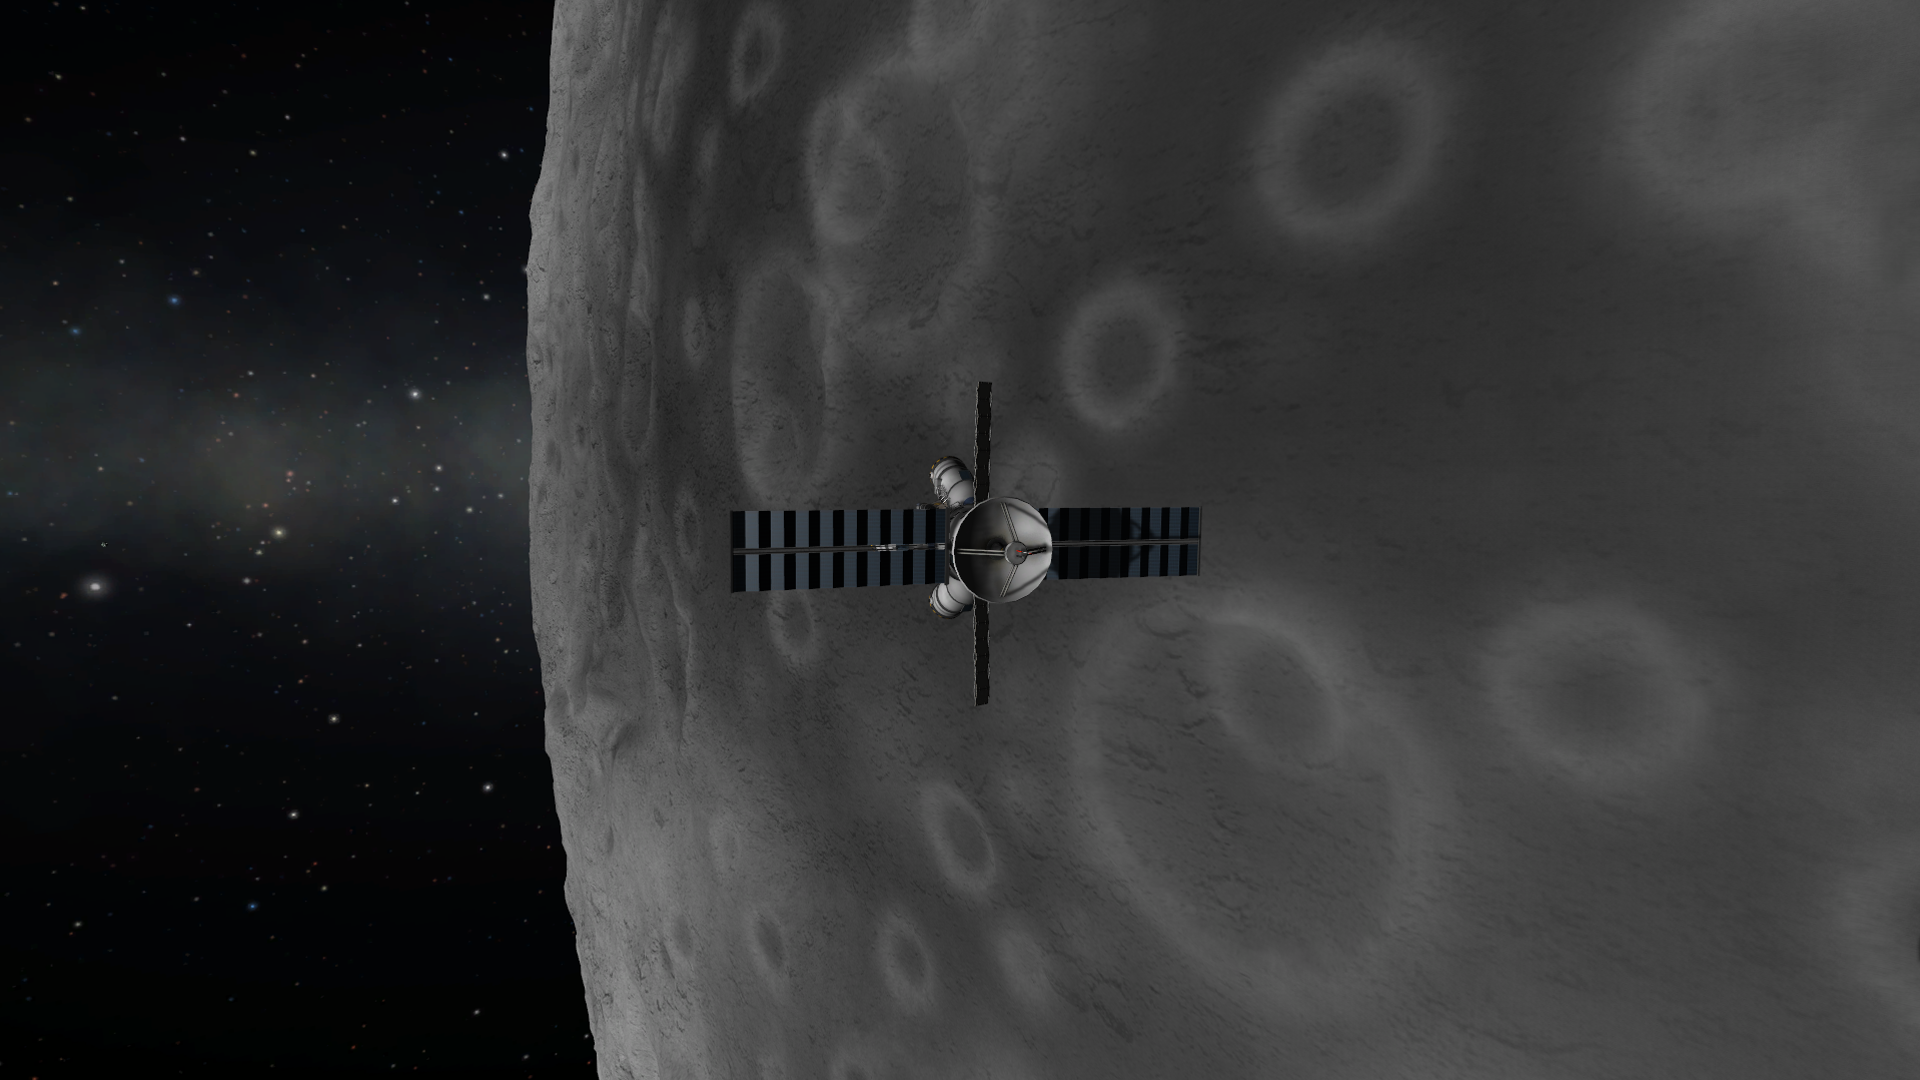 Fly Me to the Mun